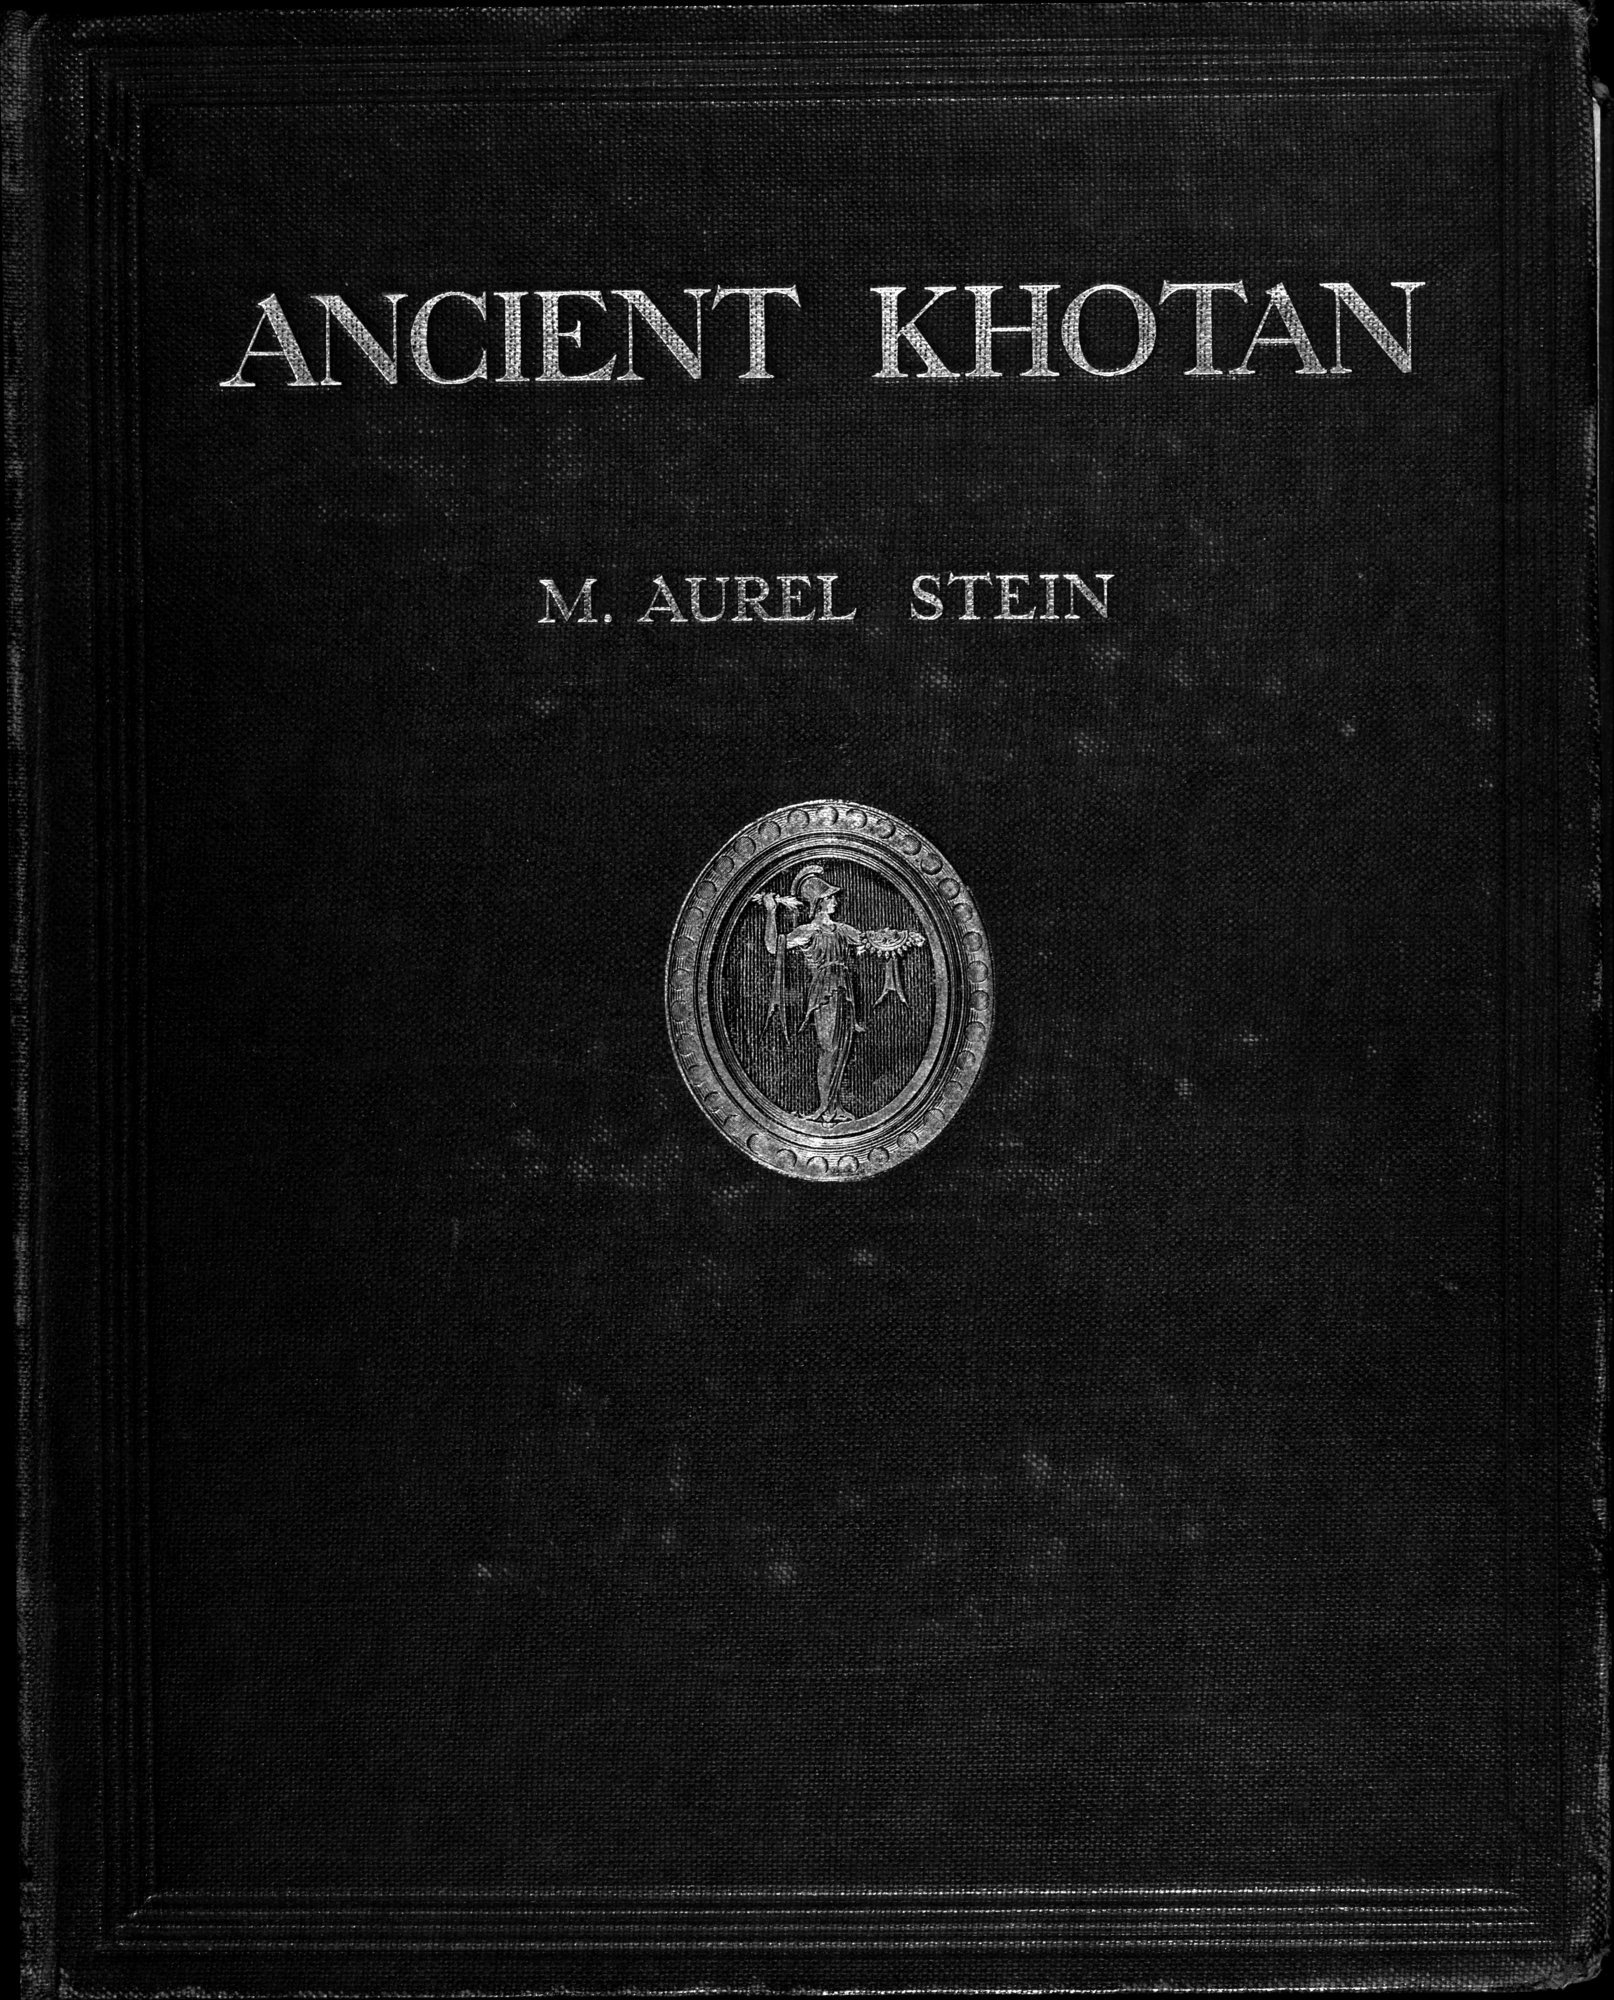 Ancient Khotan : vol.1 / Page 1 (Grayscale High Resolution Image)